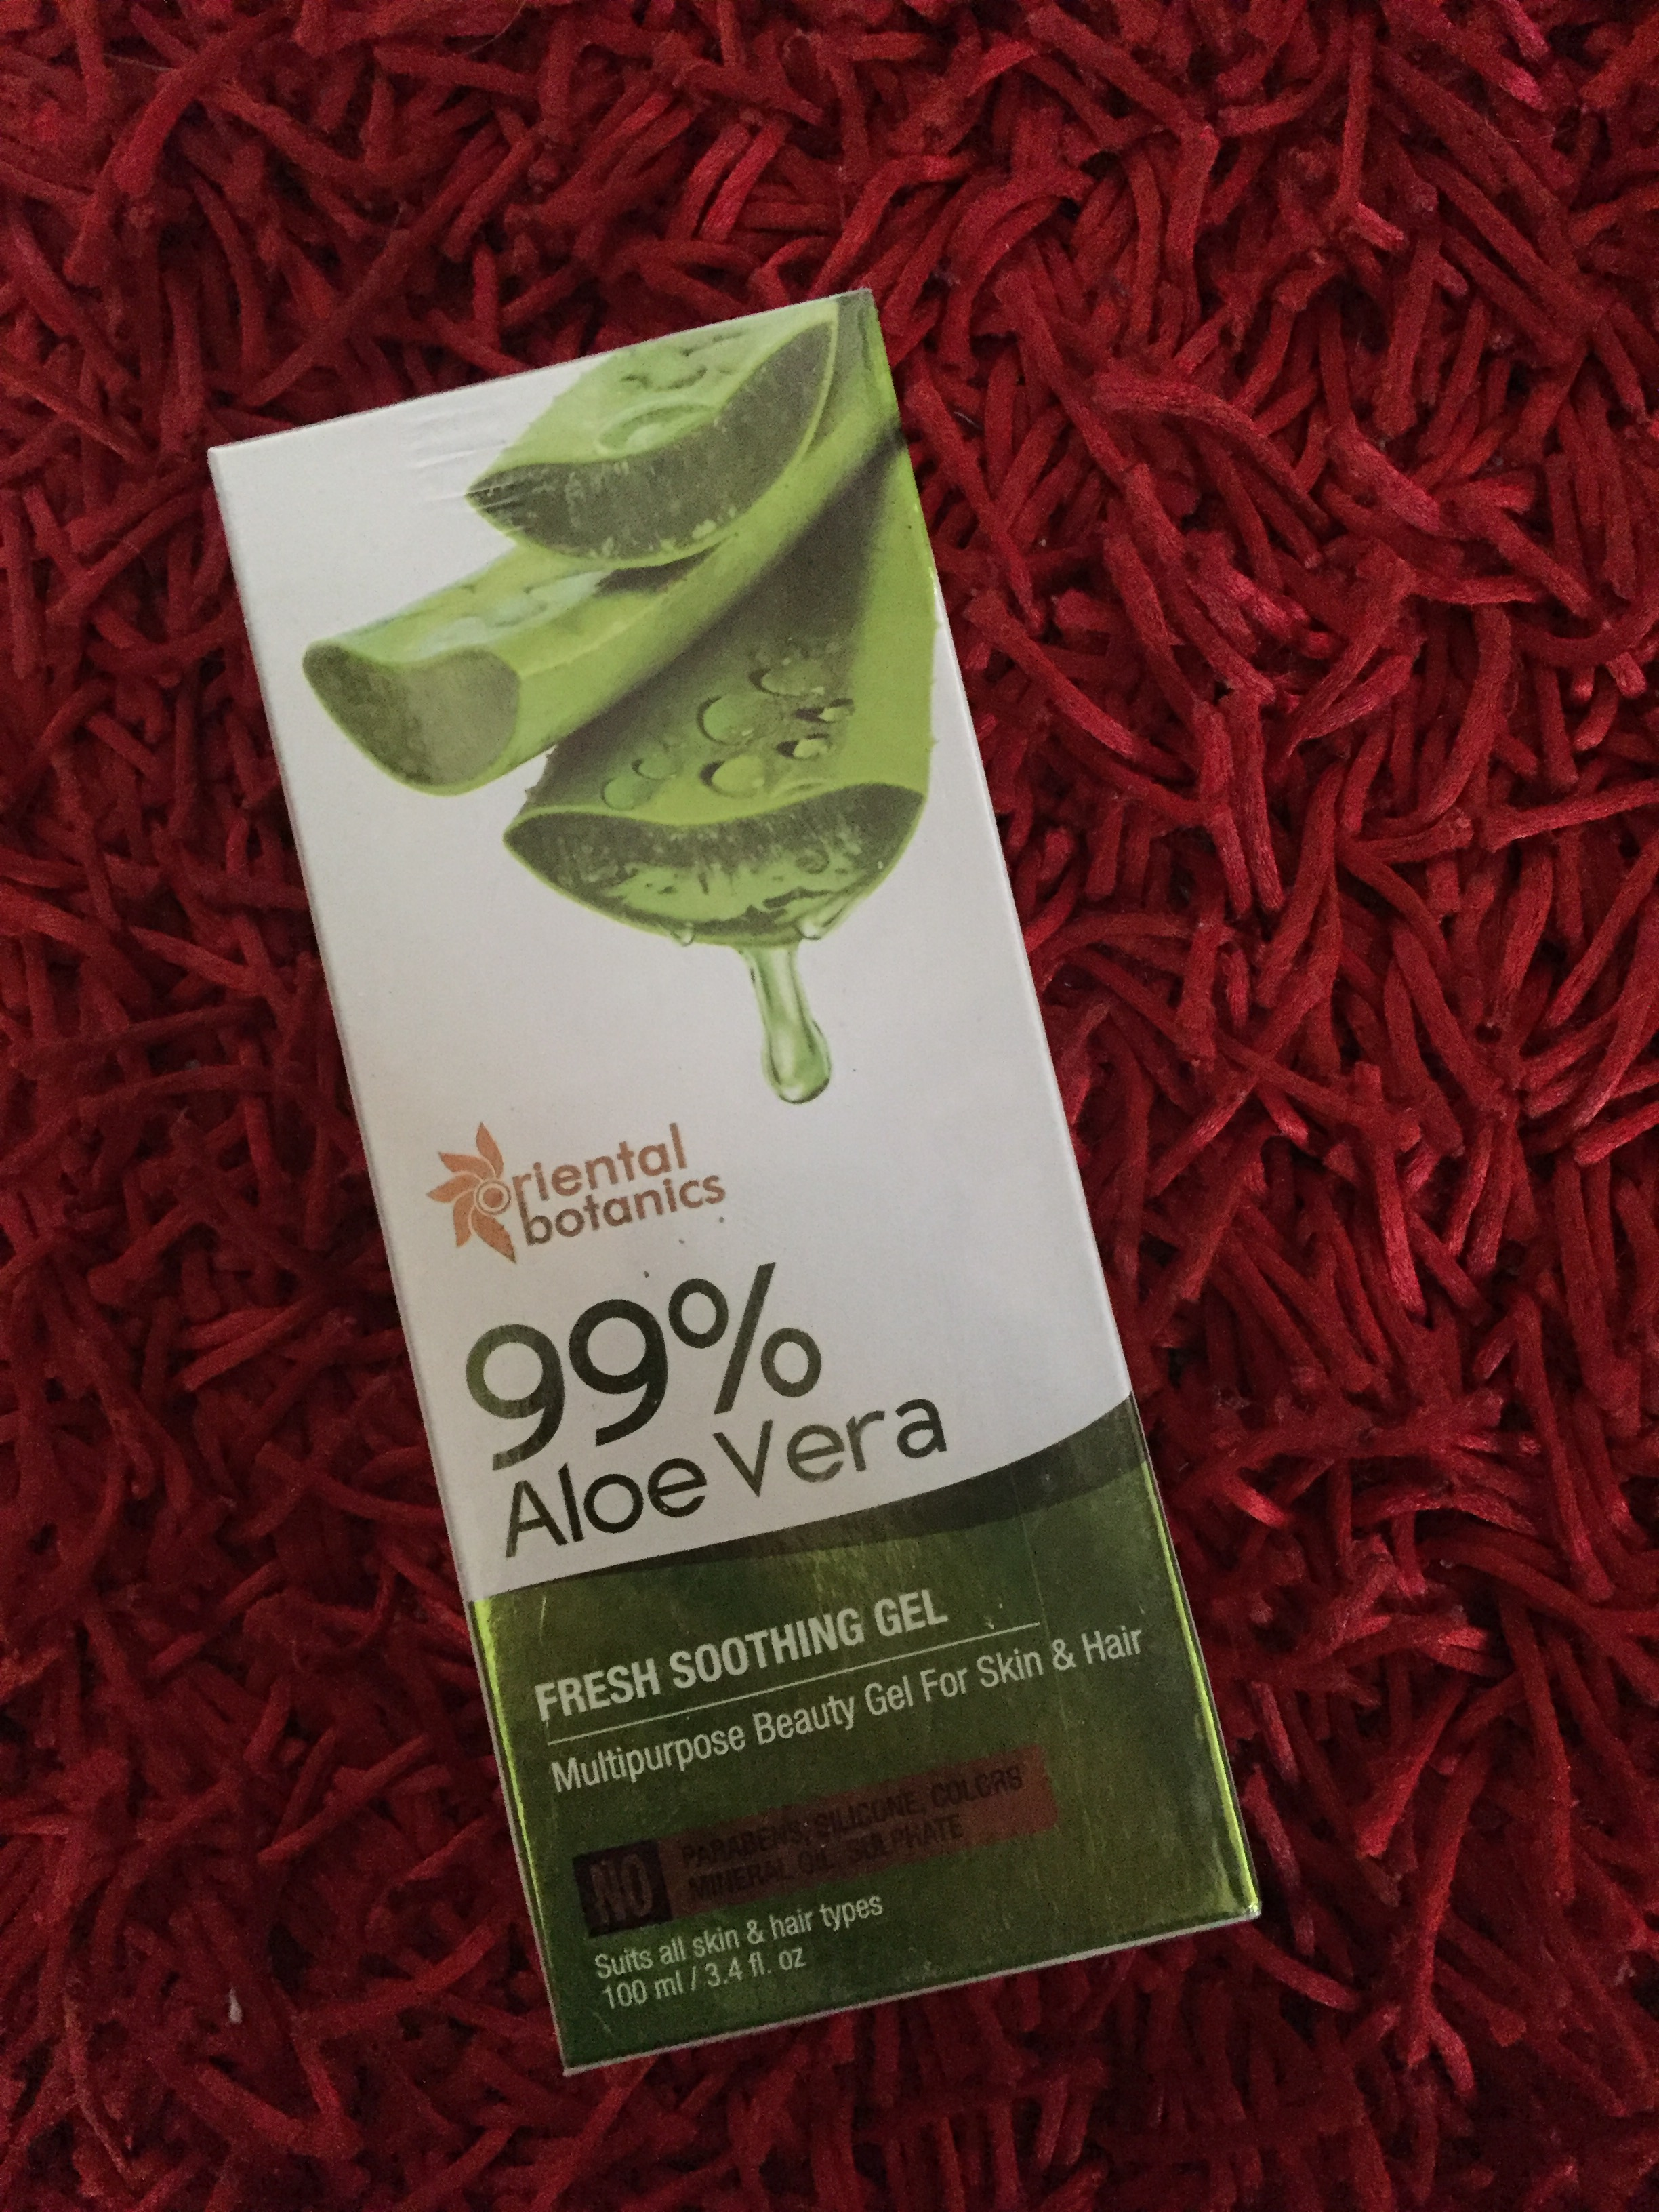 Oriental Botanics 99% Aloe Vera Fresh Soothing Gel For Skin & Hair pic 2-Highly recommended-By filmy_bhukkad